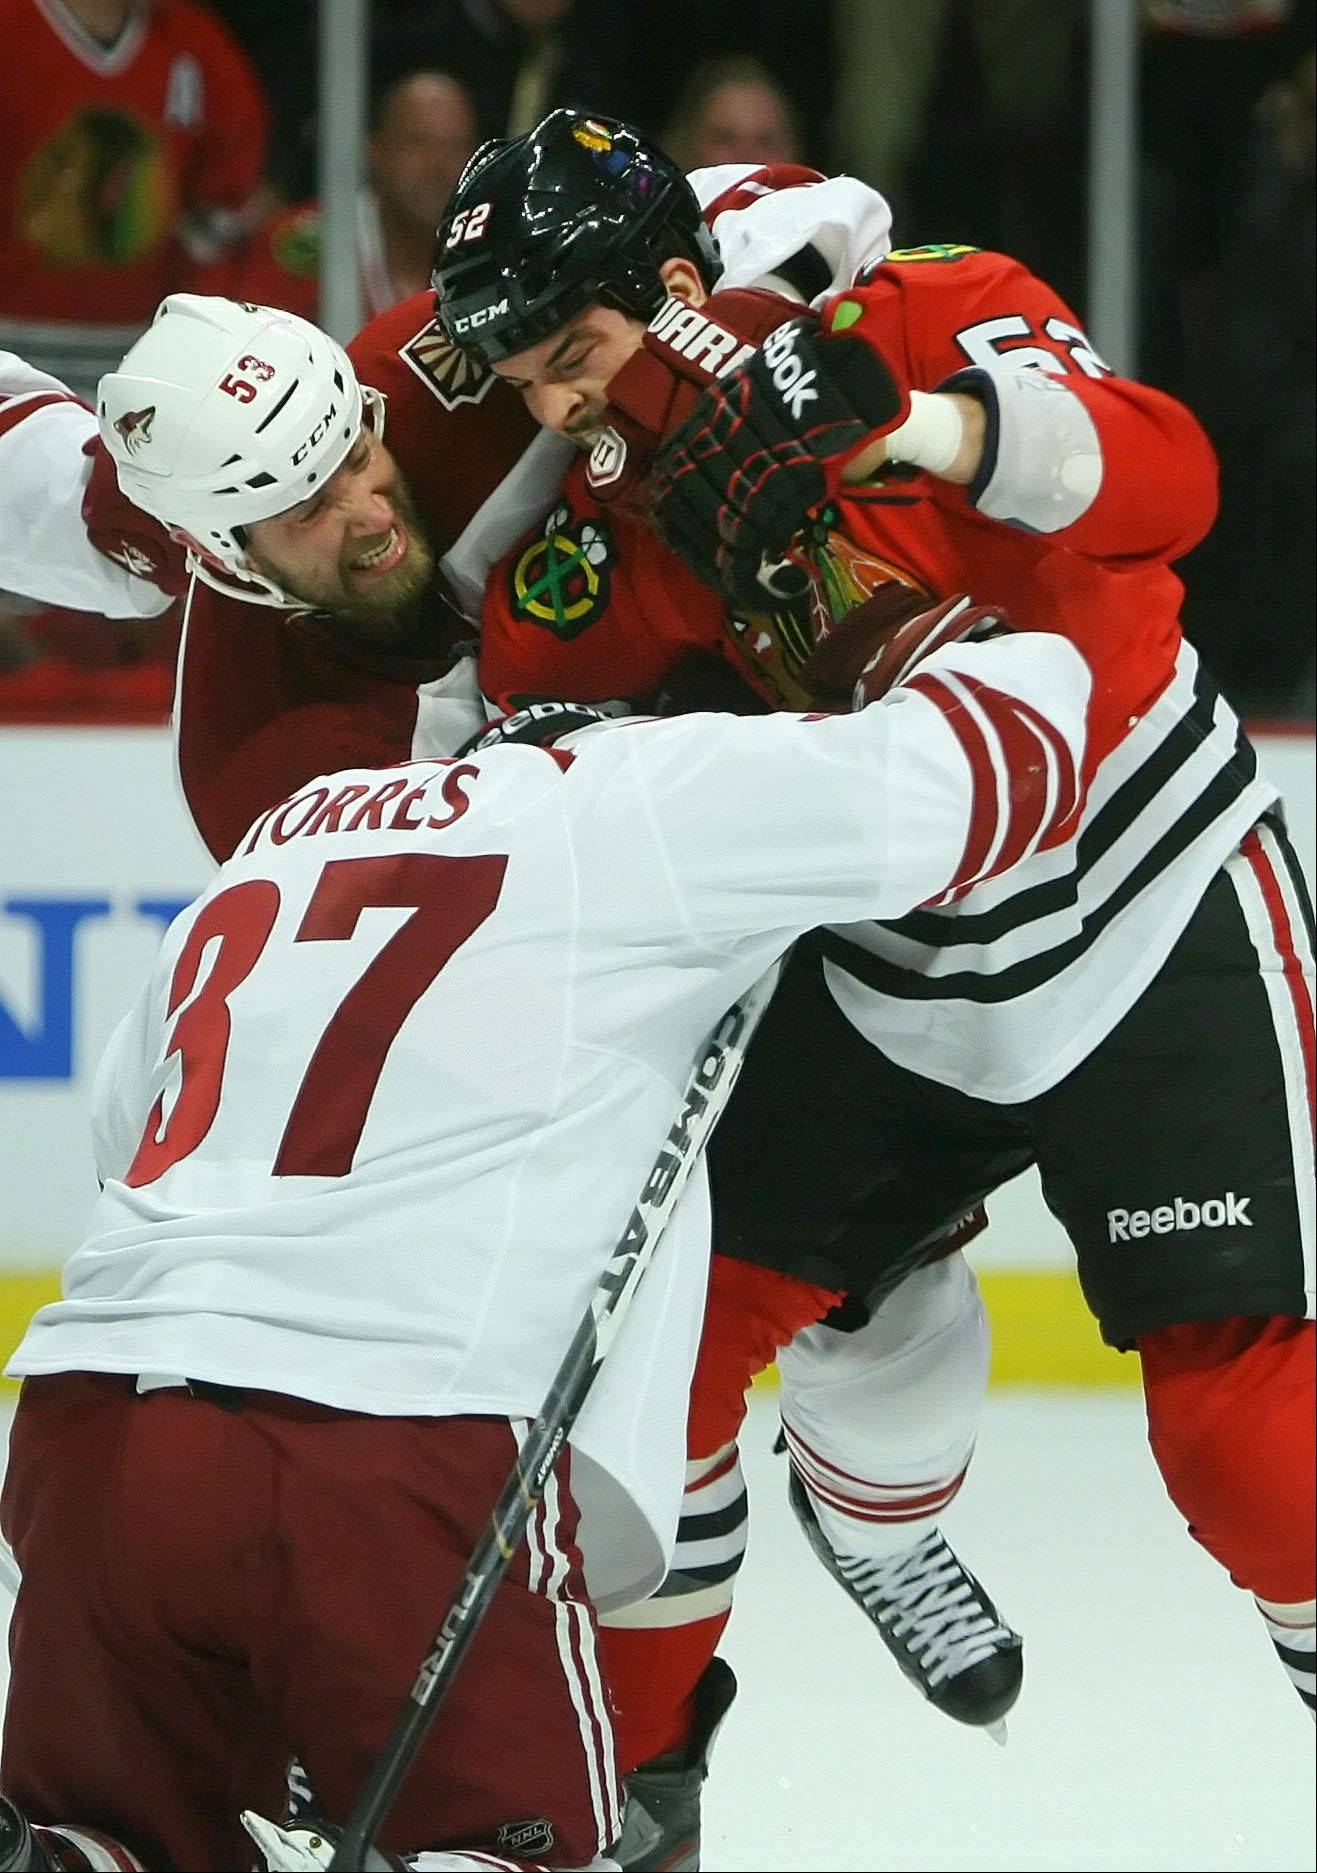 Chicago Blackhawks' left wing Brandon Bollig goes after Phoenix Coyotes left wing Raffi Torres .